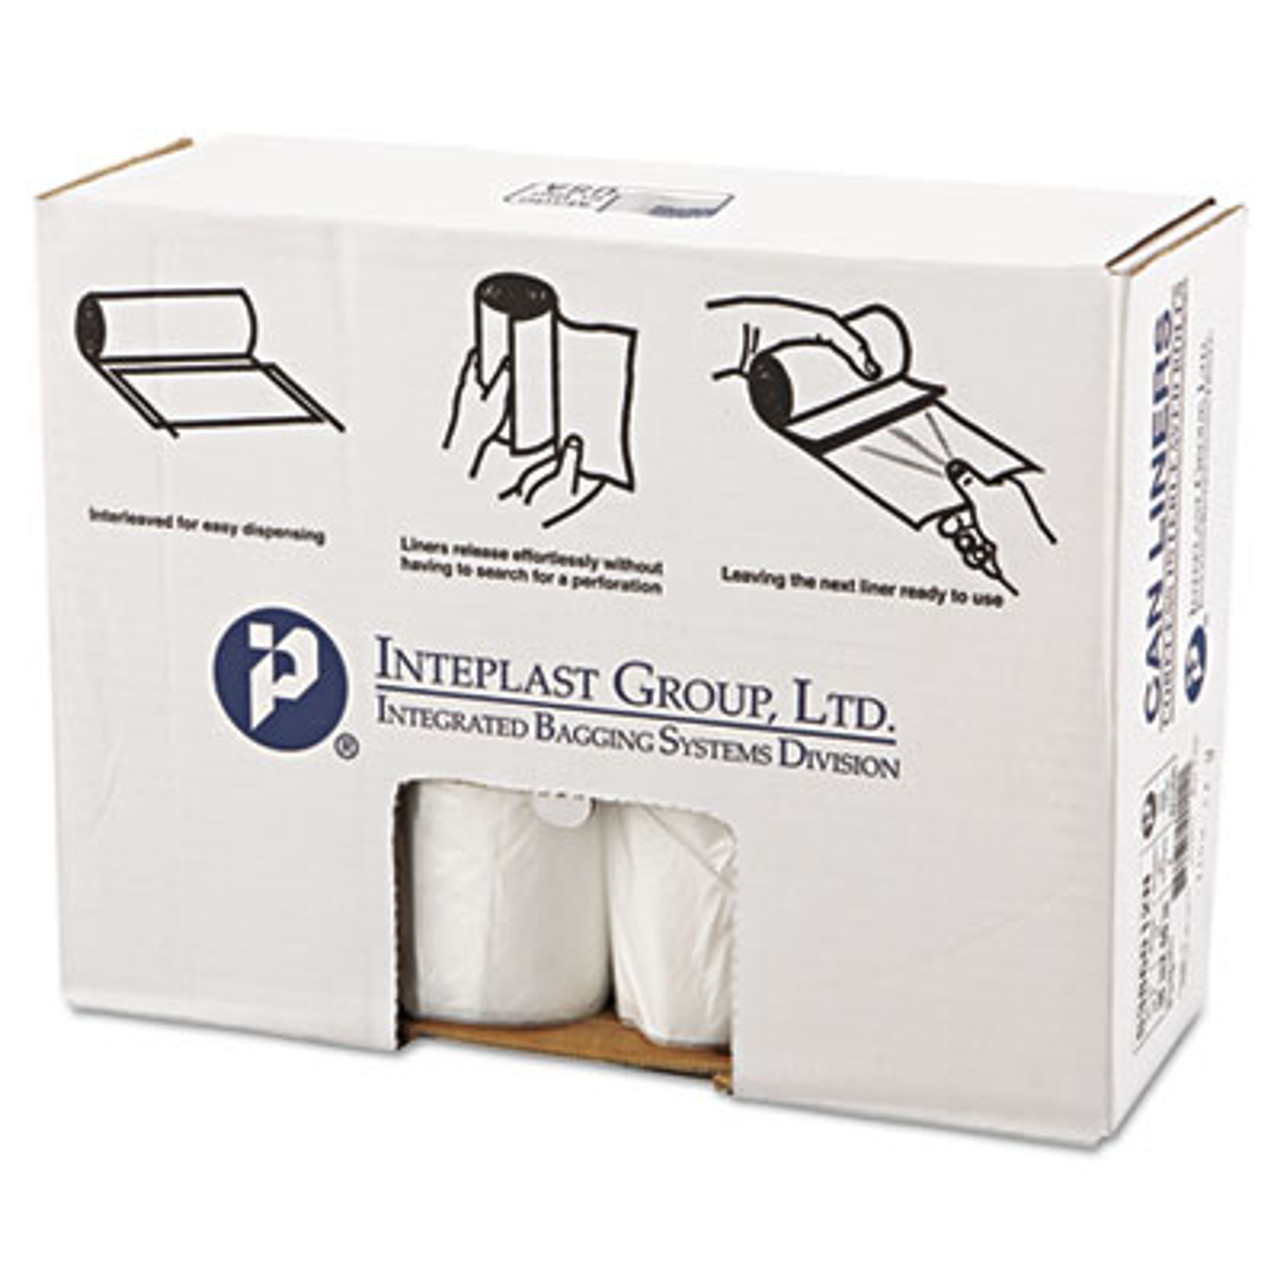 Clear 60-Gallon Roll of 25 Inteplast Group S386016N High-Density Can Liner 16 Micron 38 x 60 Case of 8 Rolls